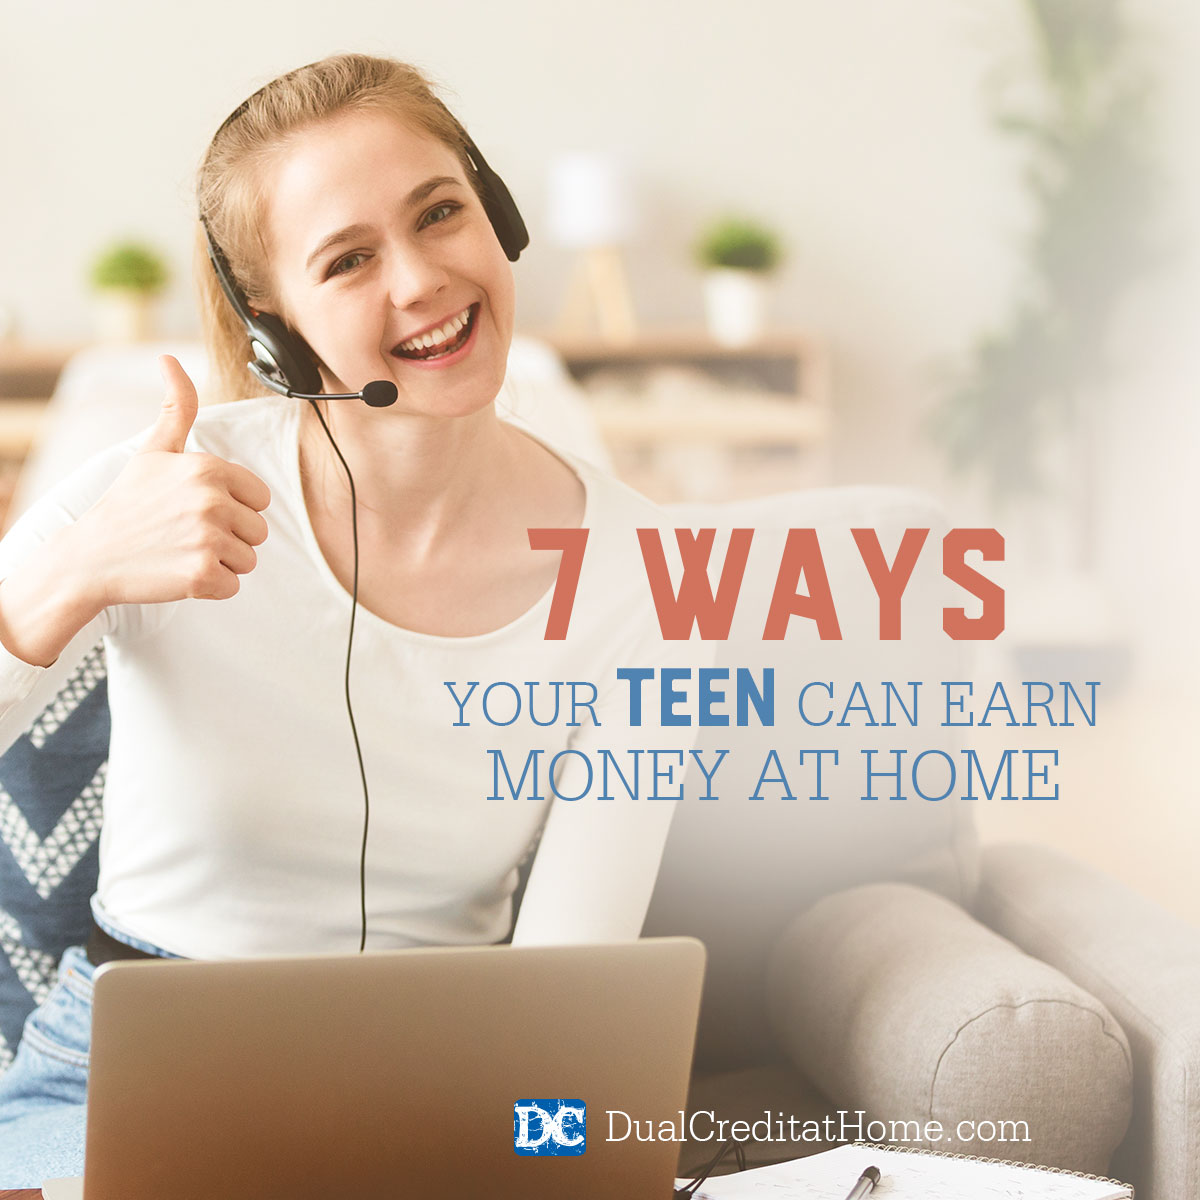 7 Ways Your Teen Can Earn Money at Home